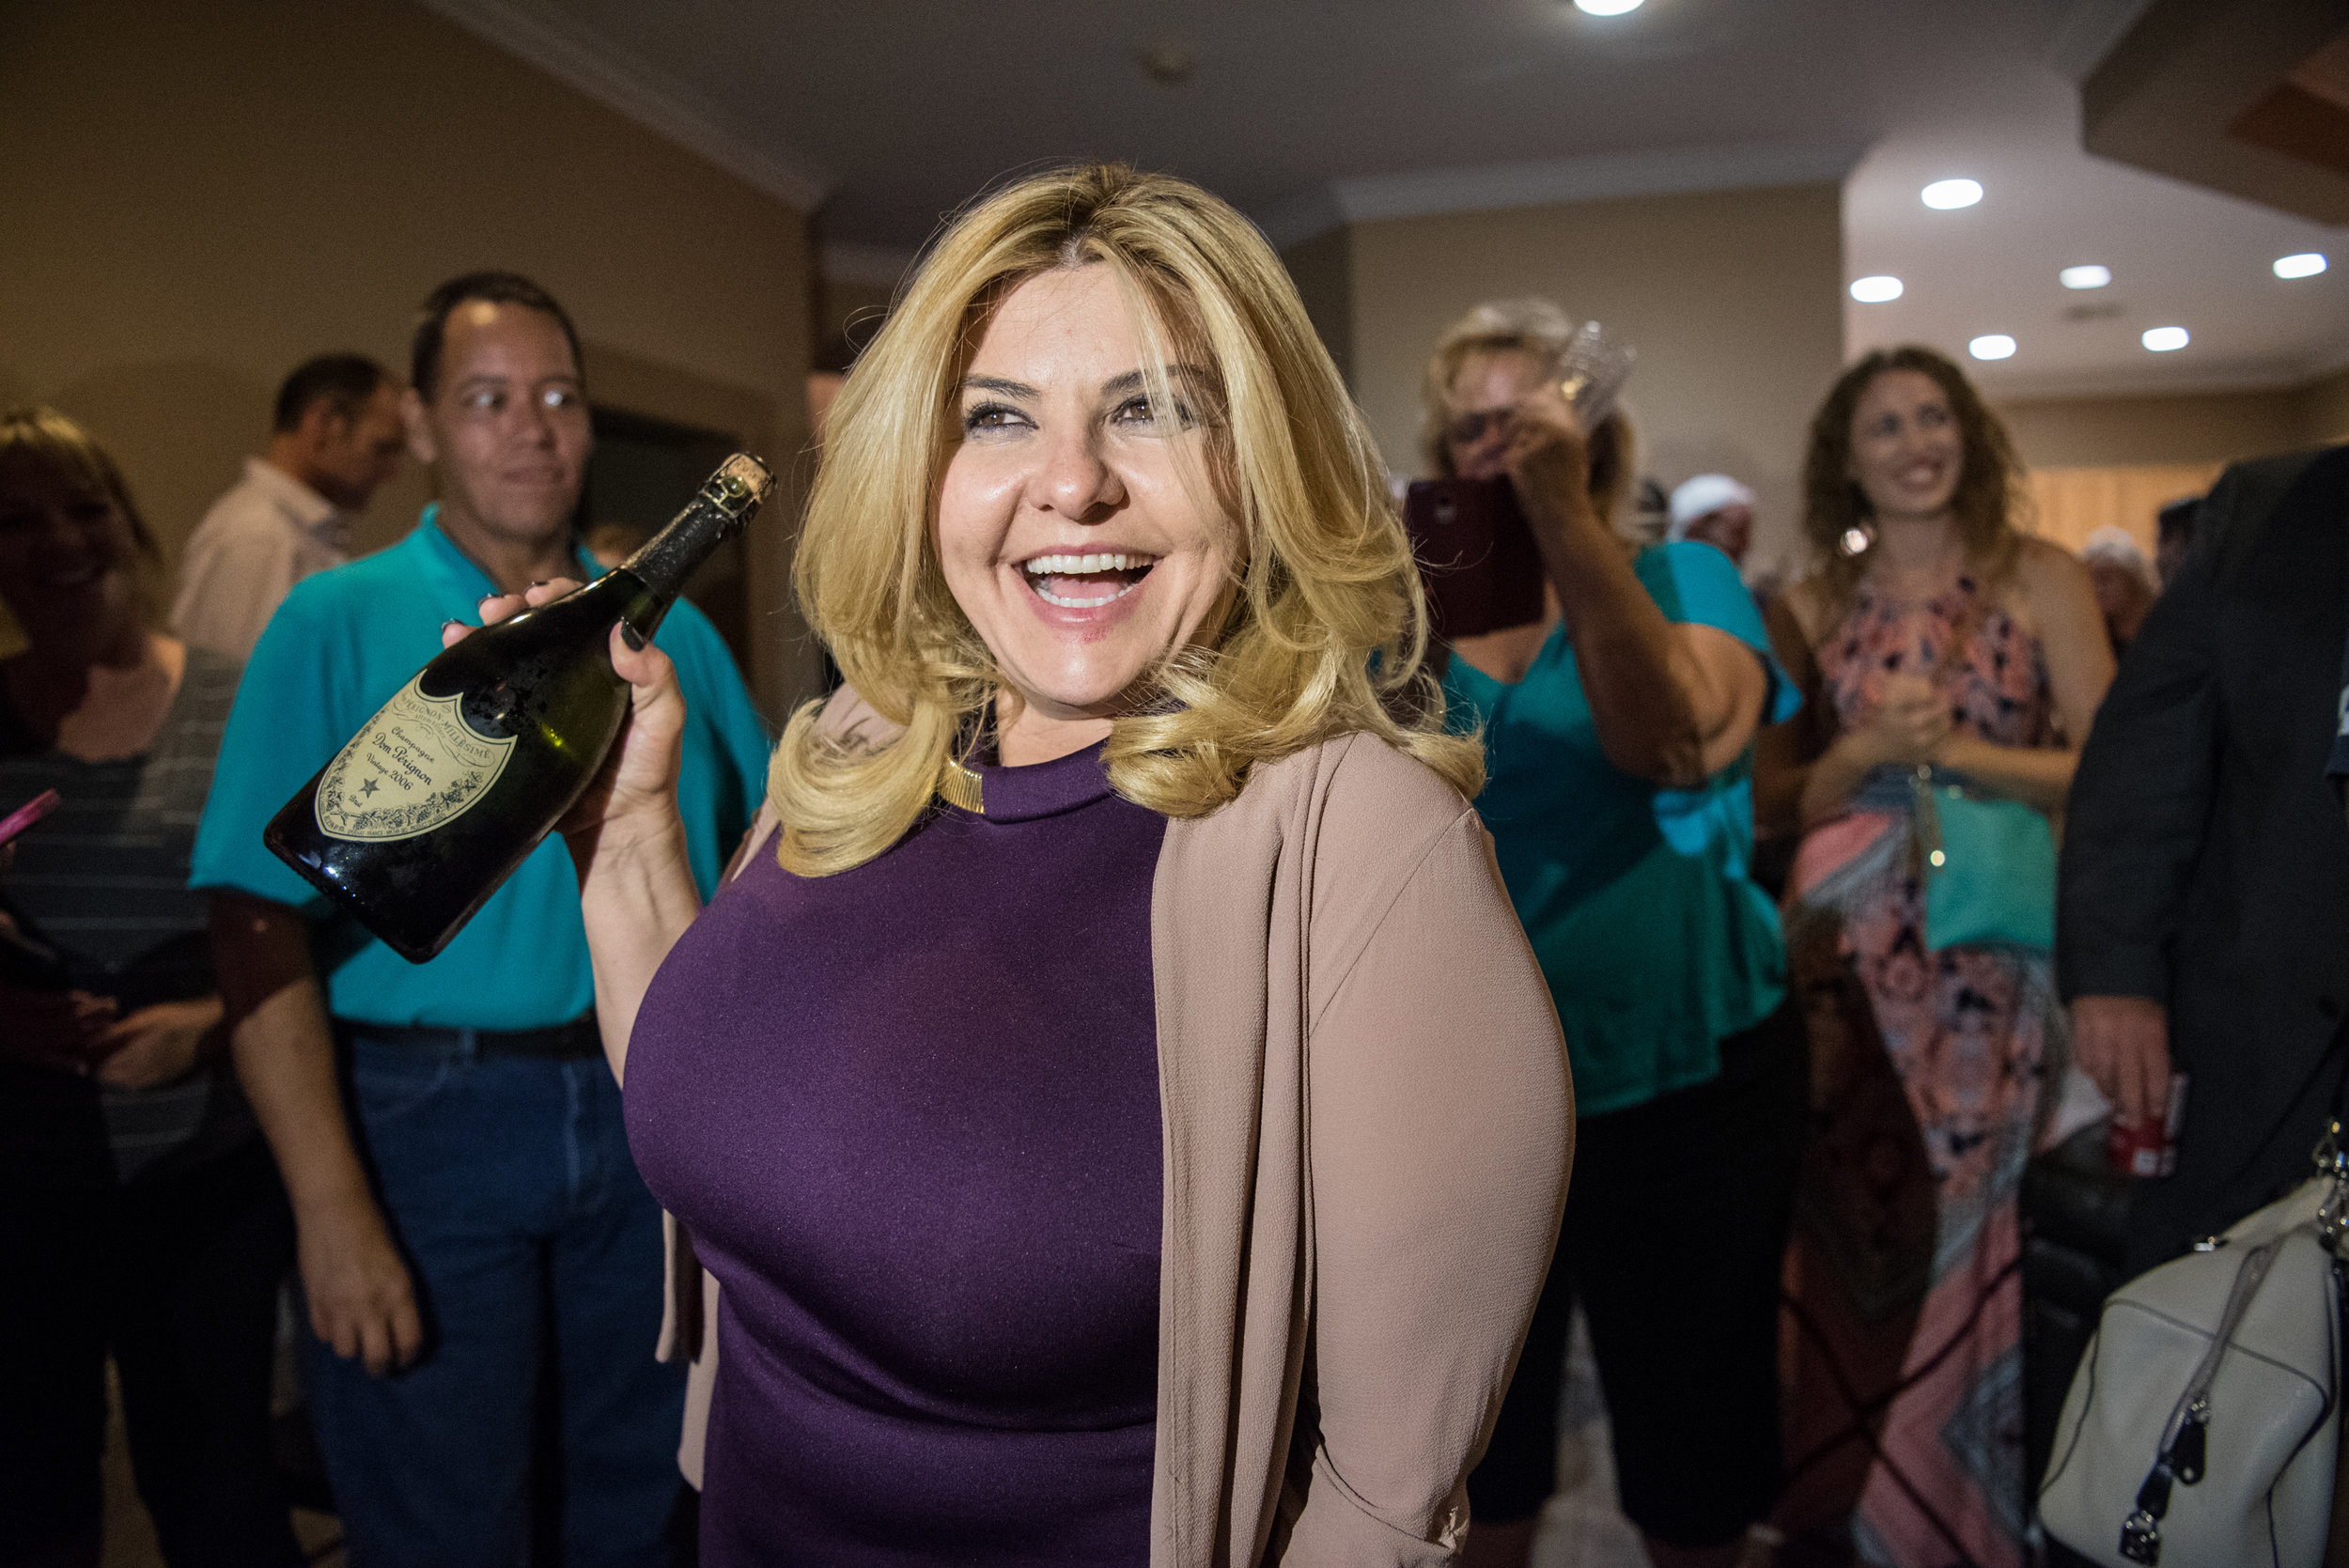 Michele Fiore celebrates winning the Ward 6 Las Vegas City Councilwoman position on Tuesday, June 13, 2017 in Las Vegas. Morgan Lieberman Las Vegas Review-Journal